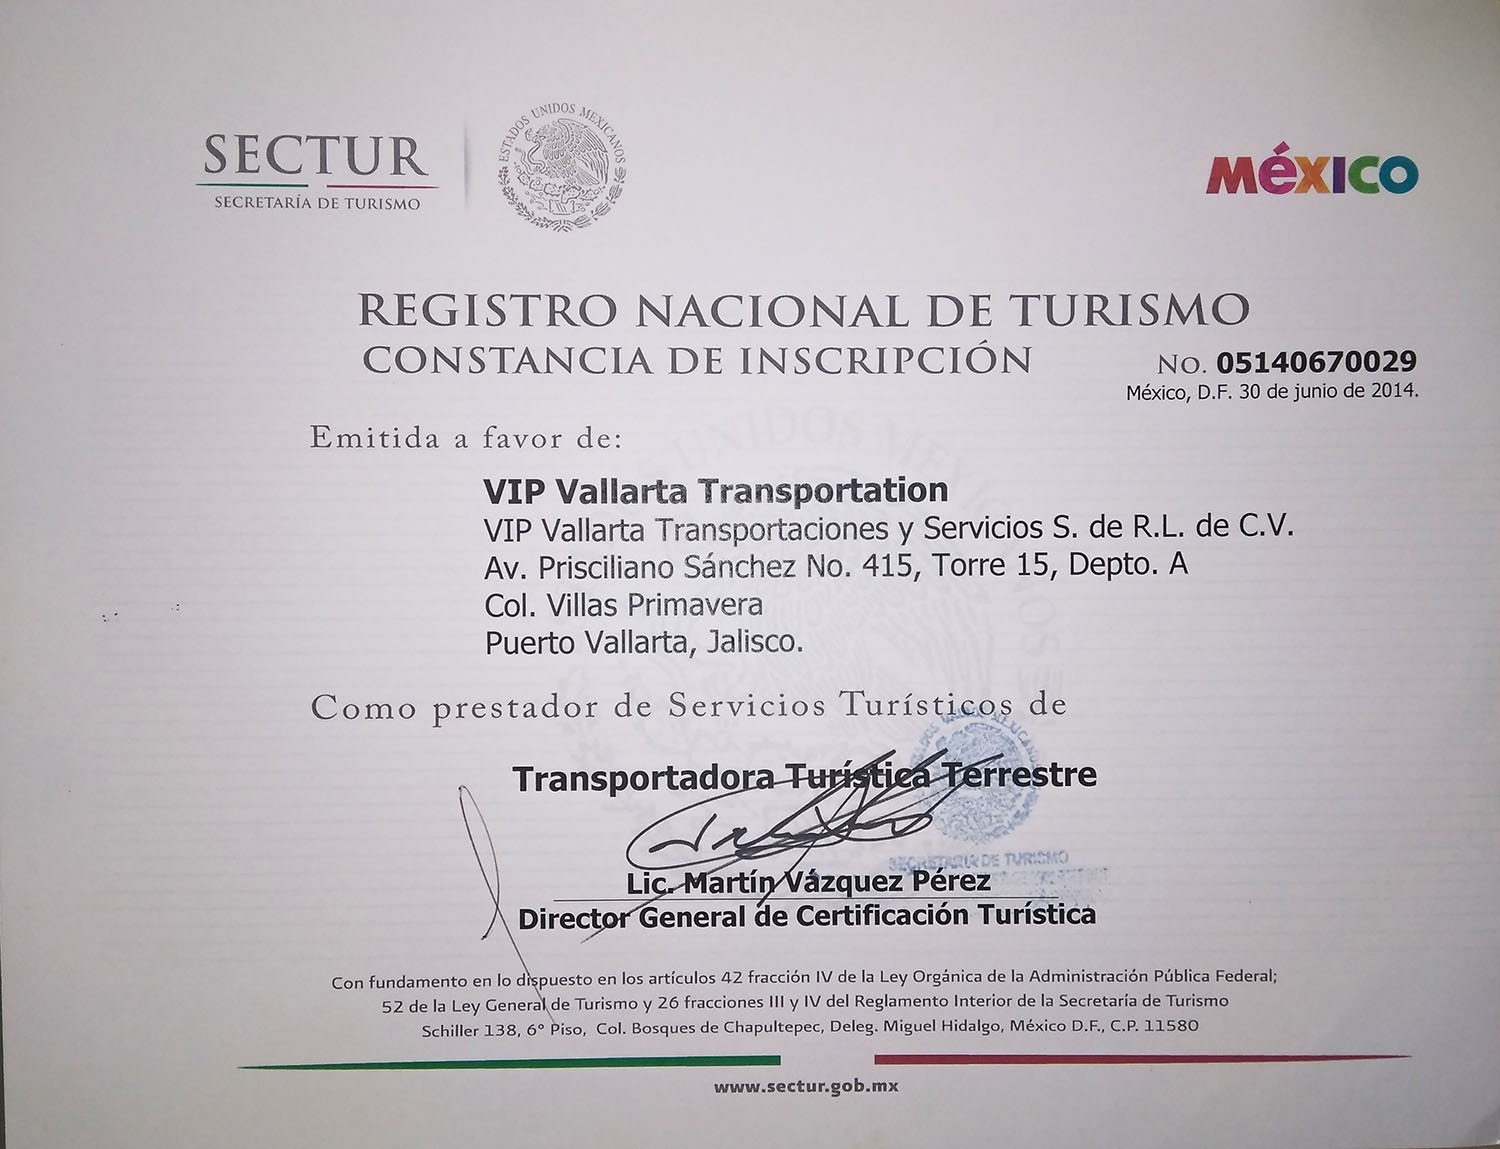 National Registry of Tourism Certificate of Registration VIP Vallarta Transportation